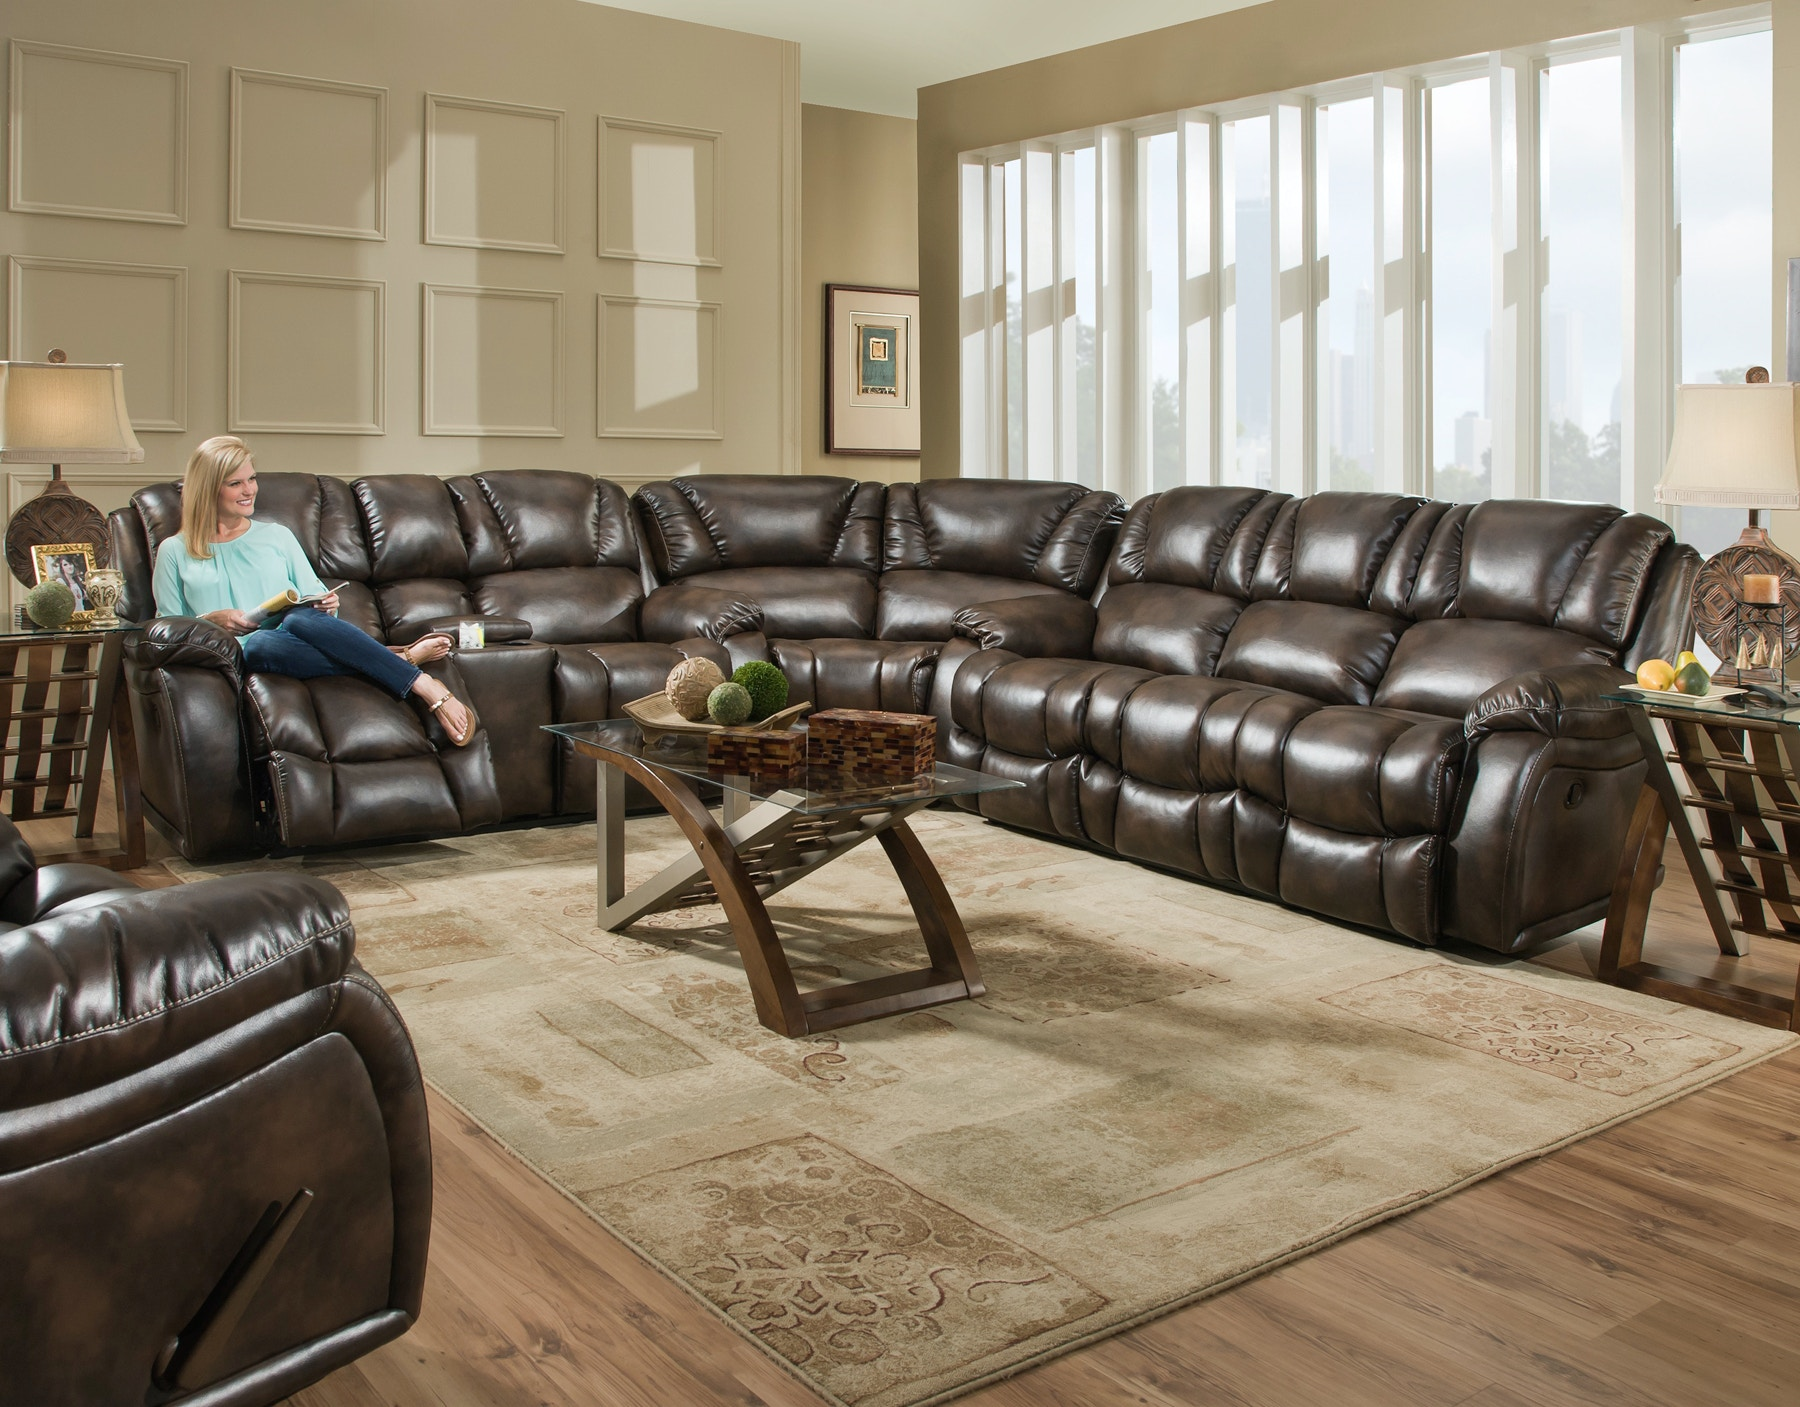 Home Stretch Brahma Reclining Sectional 852557. Home Stretch Living Room Brahma Reclining Sectional 852557